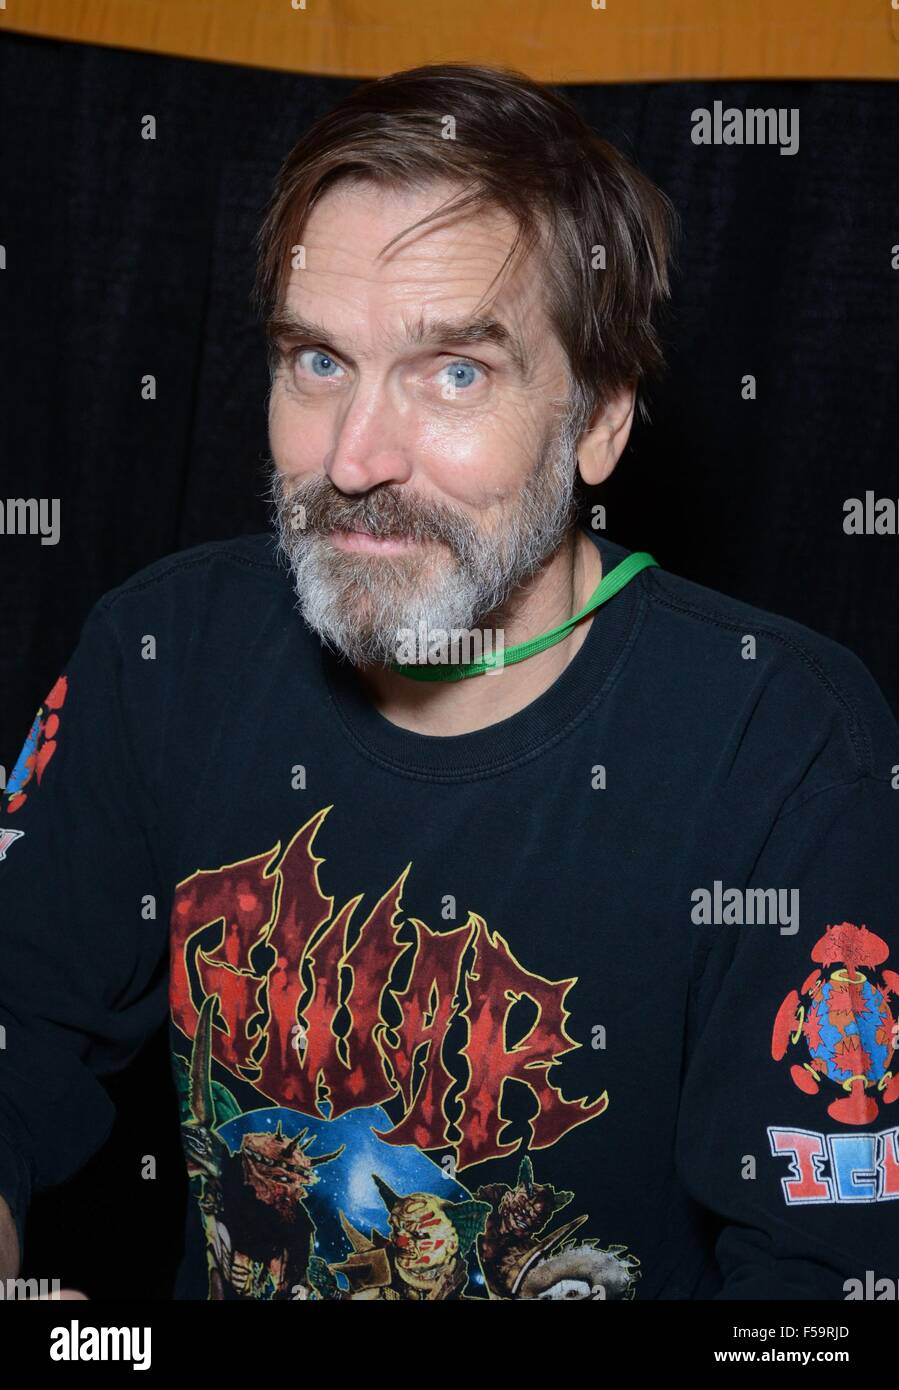 bill moseley in attendance for spooky empire ultimate halloween weekend fri hyatt regency hotel orlando fl october 30 2015